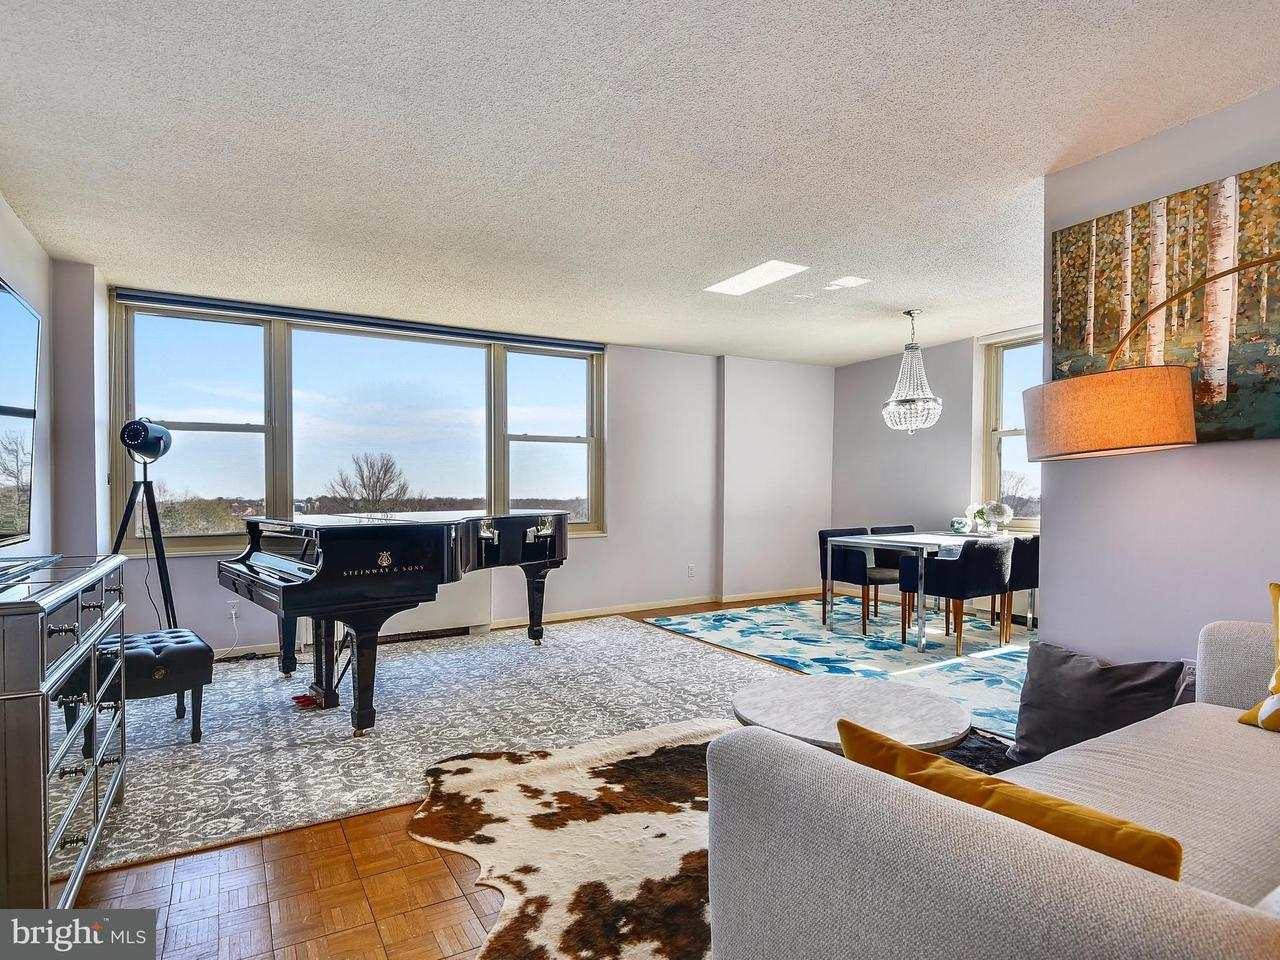 Condominium for Sale at 4401 Roland Ave #501 Baltimore, Maryland 21210 United States